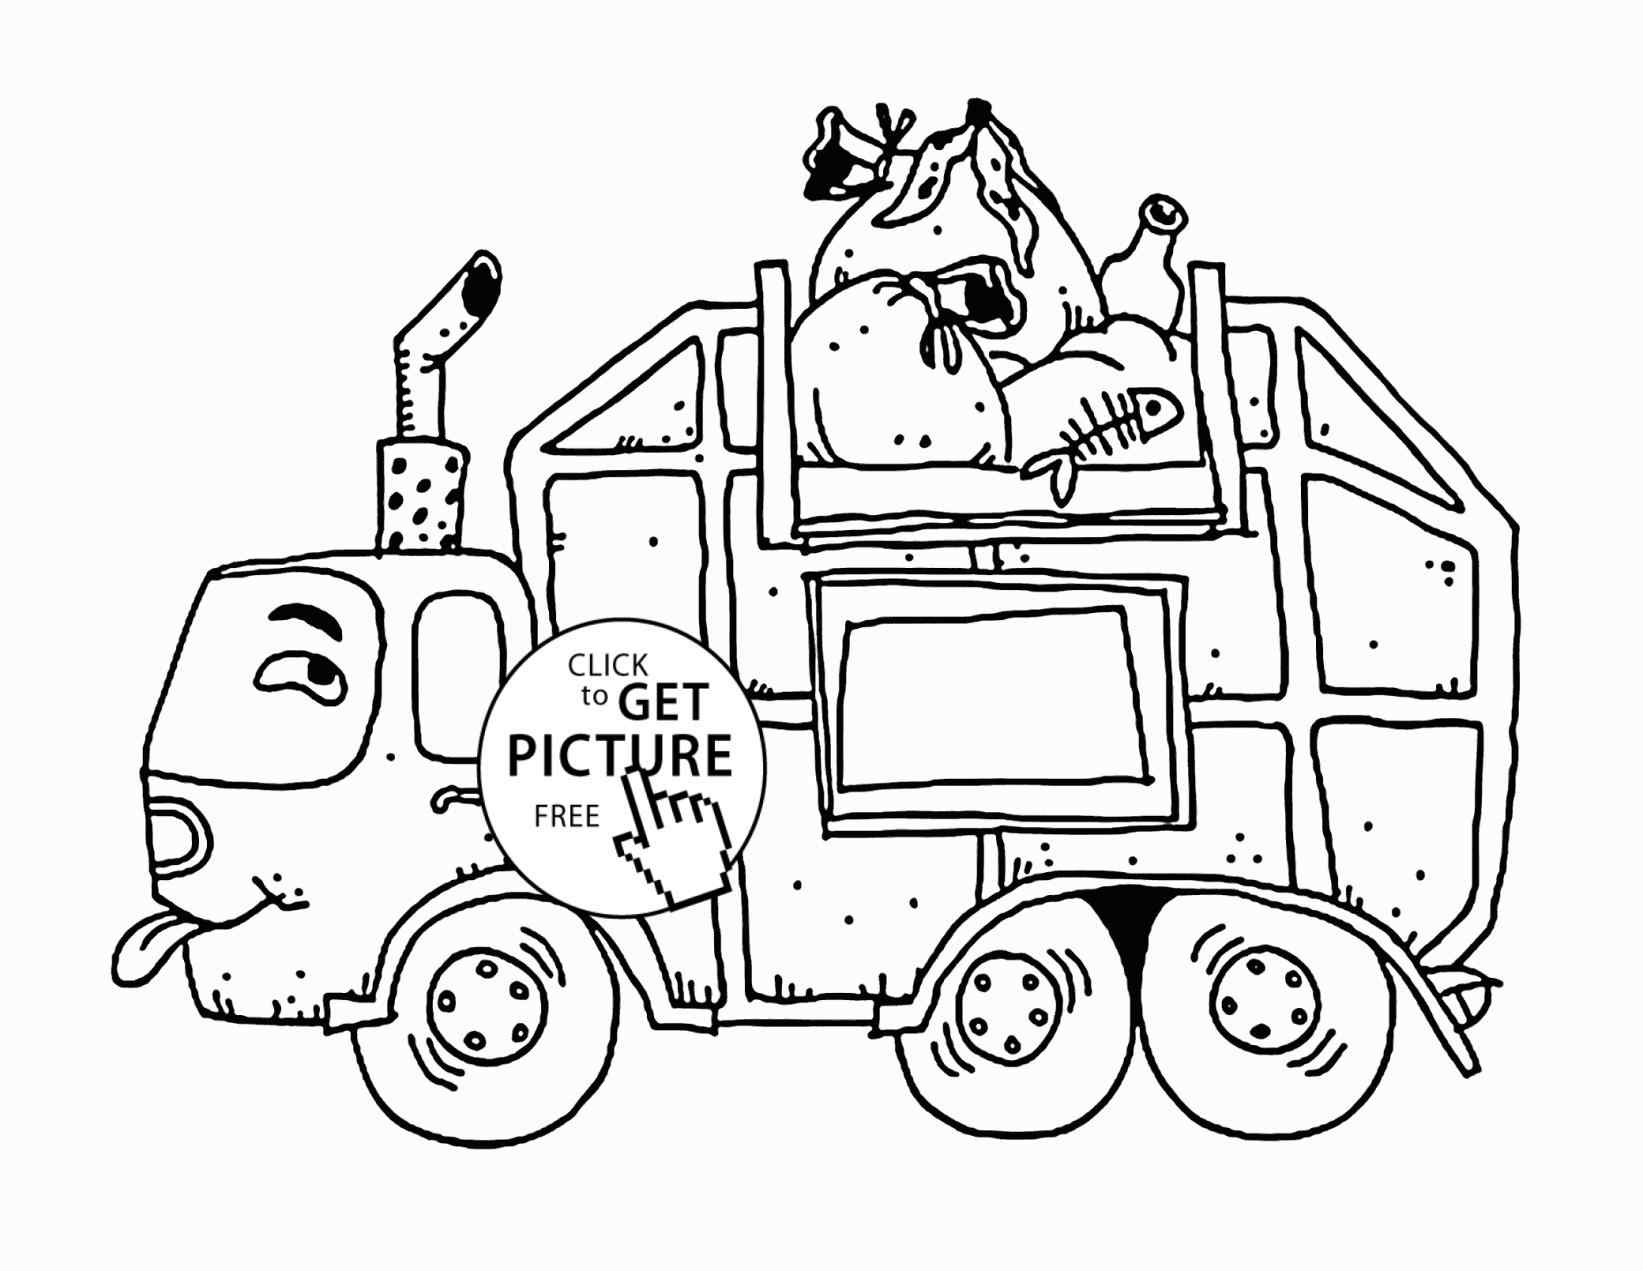 kenworth truck coloring pages diesel truck coloring pages at getcoloringscom free truck kenworth pages coloring